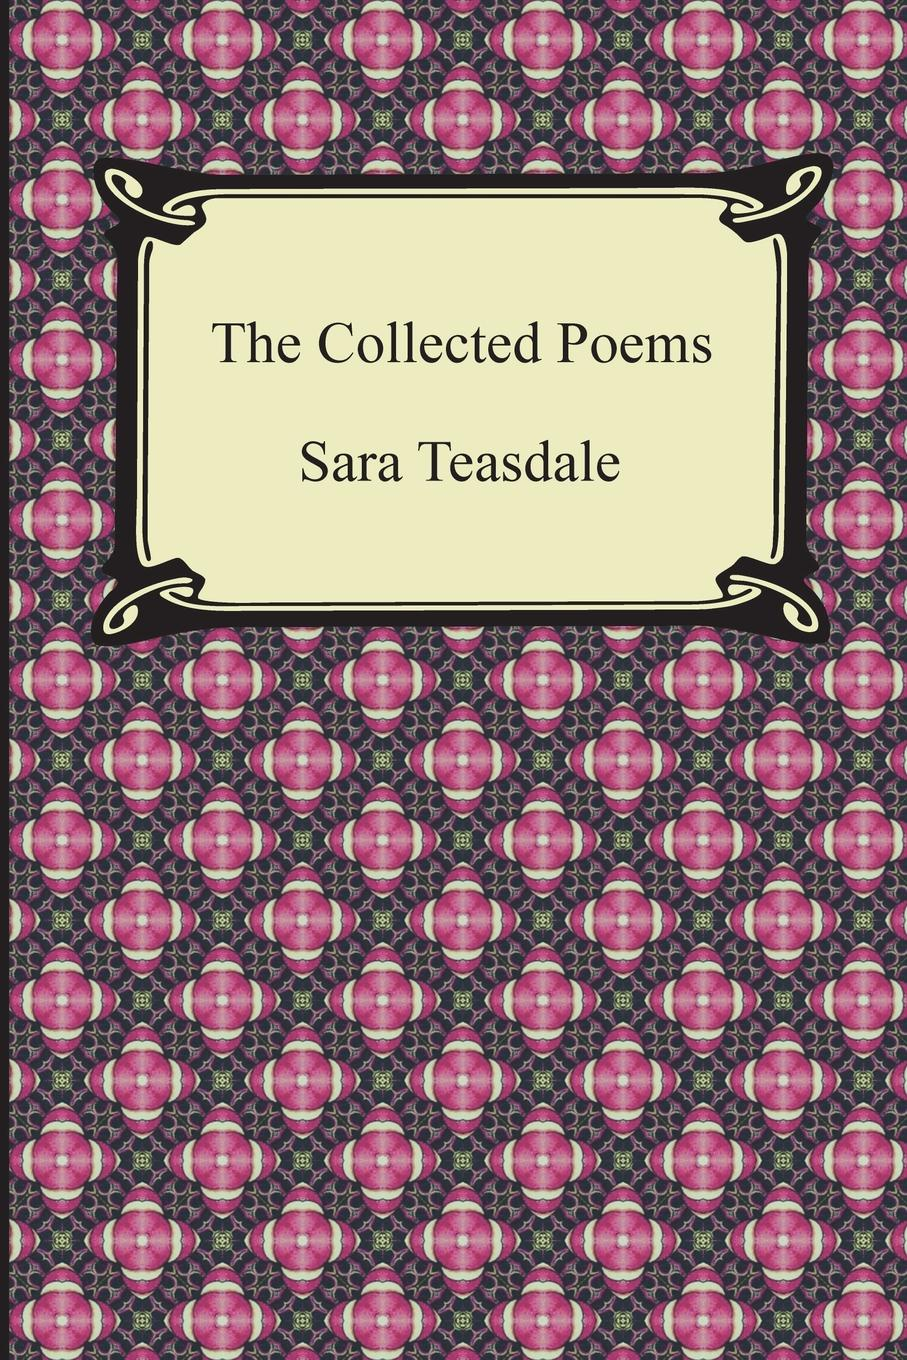 Sara Teasdale The Collected Poems of Sara Teasdale (Sonnets to Duse and Other Poems, Helen of Troy and Other Poems, Rivers to the Sea, Love Songs, and Flame and Sha early poems